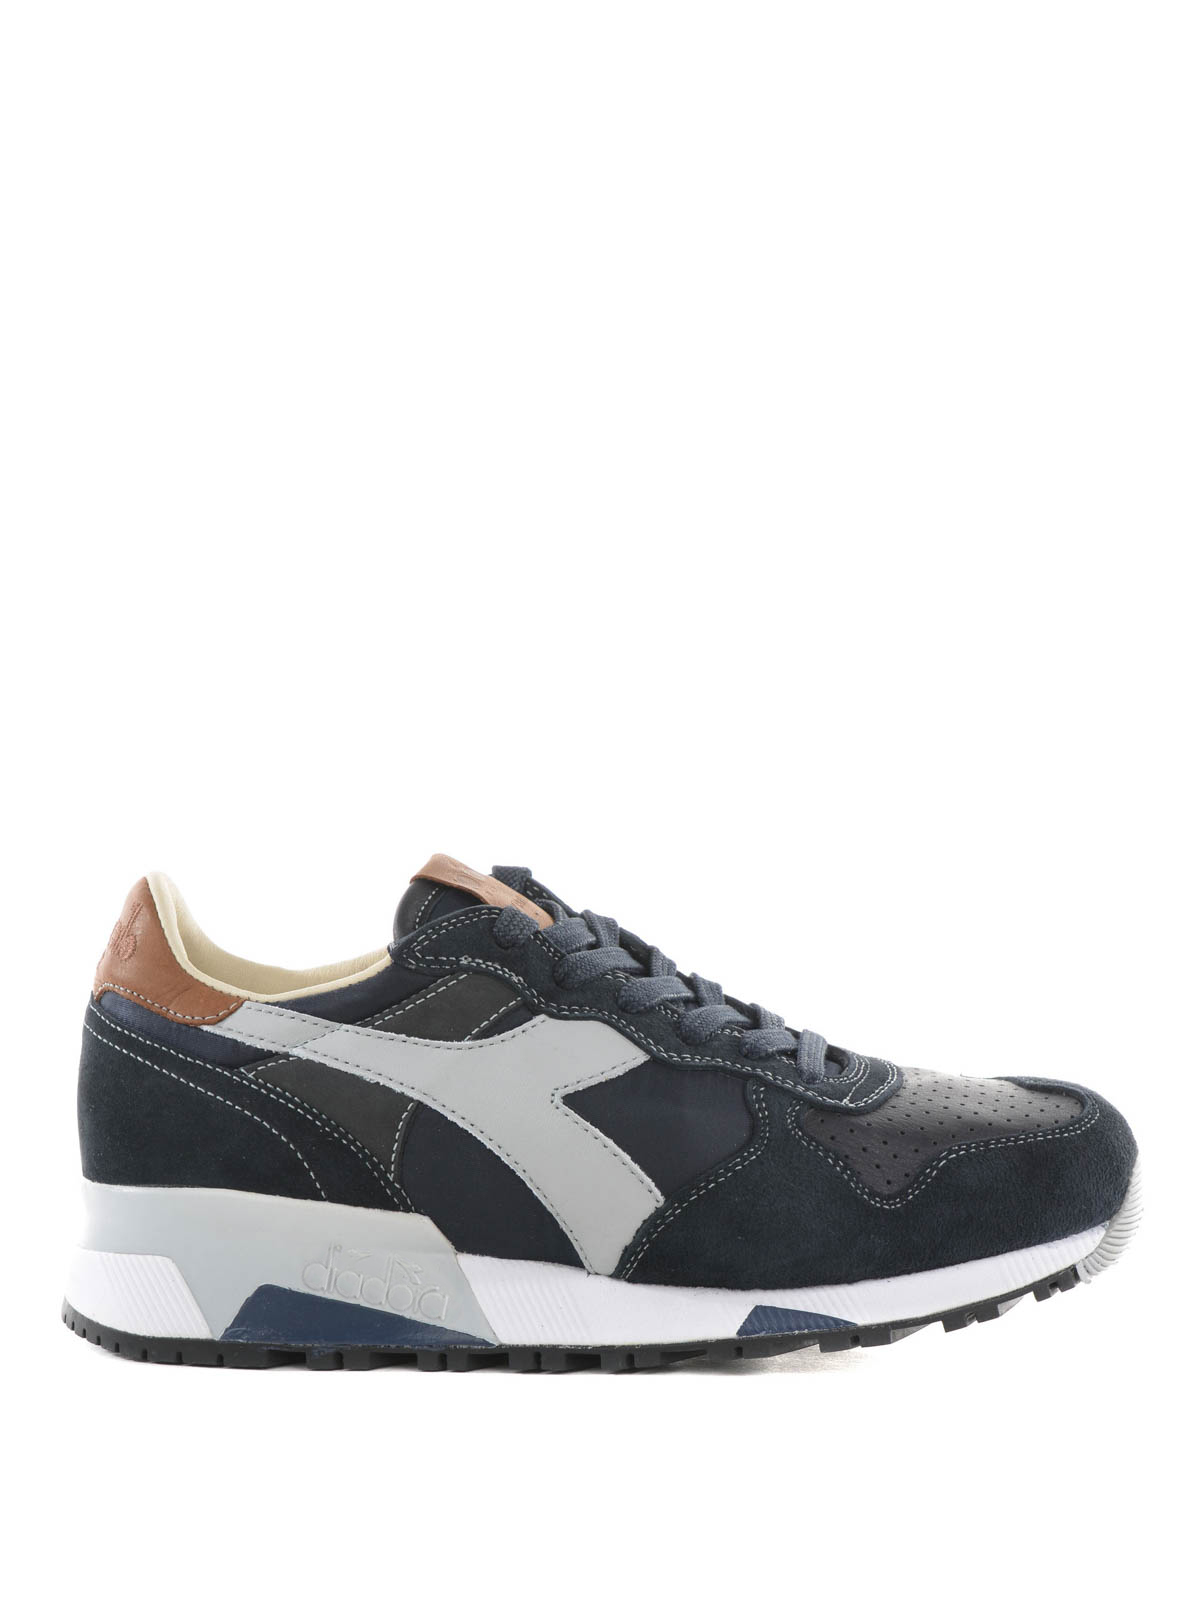 multiuso blocco stradale Chiave  Diadora Heritage - Trident 90 Nyl sneakers - trainers - 16130360117